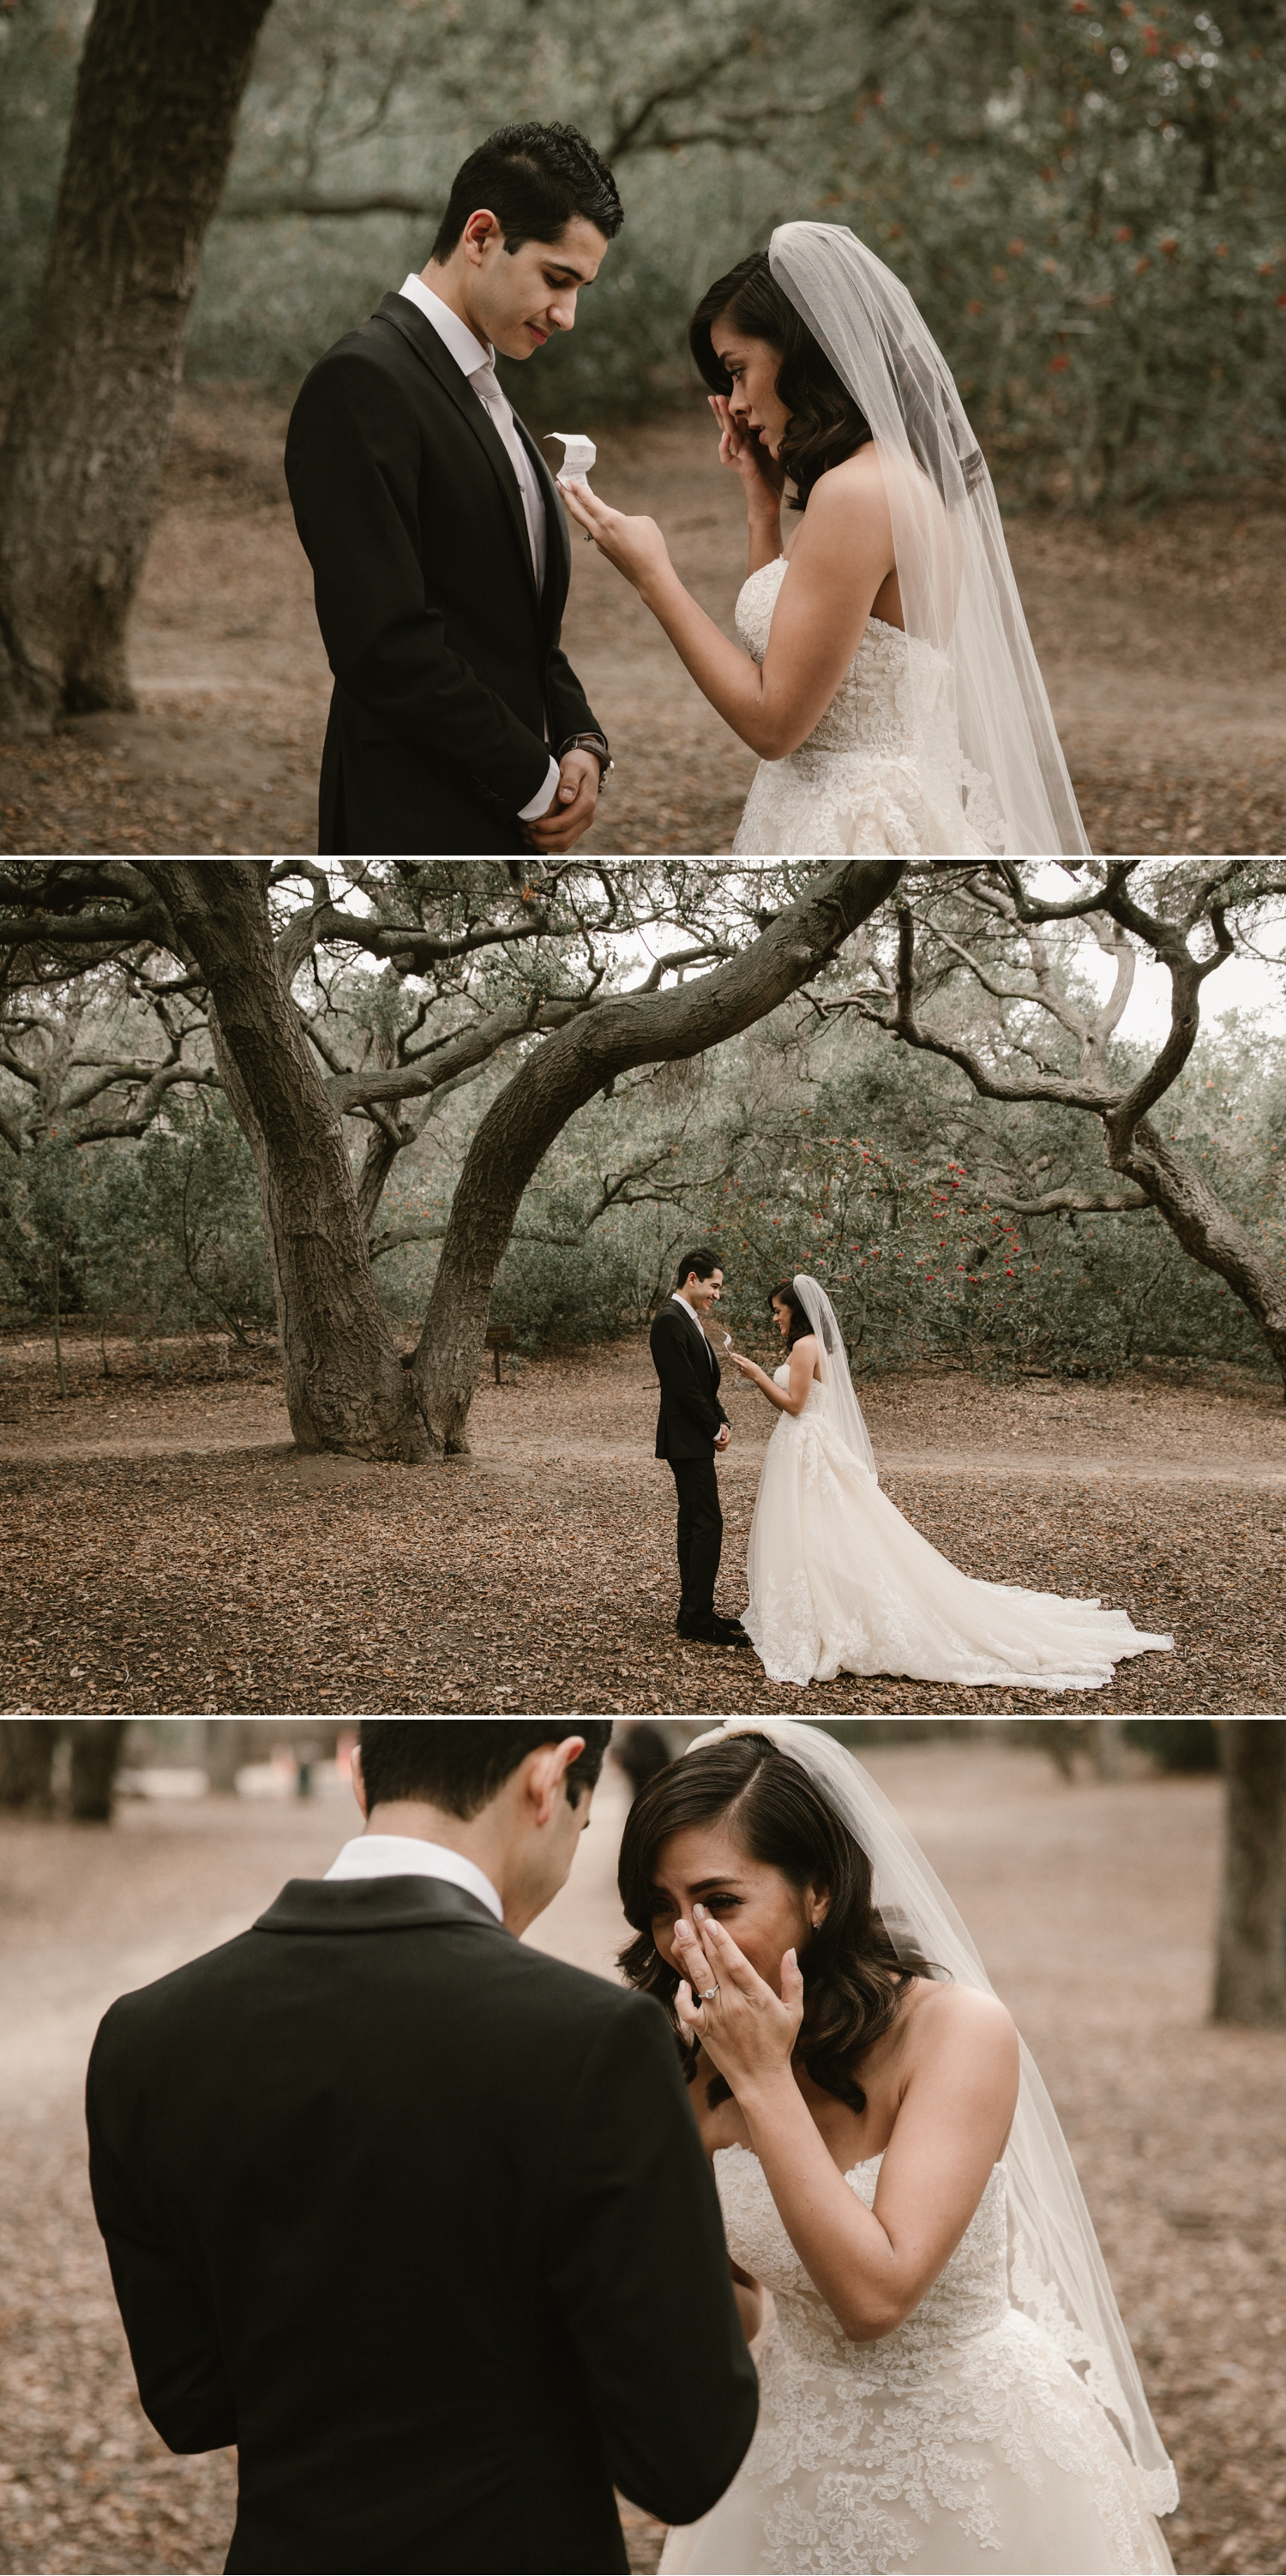 Vow exchange at Oak Canyon Nature Center in Anaheim by Paige Nelson